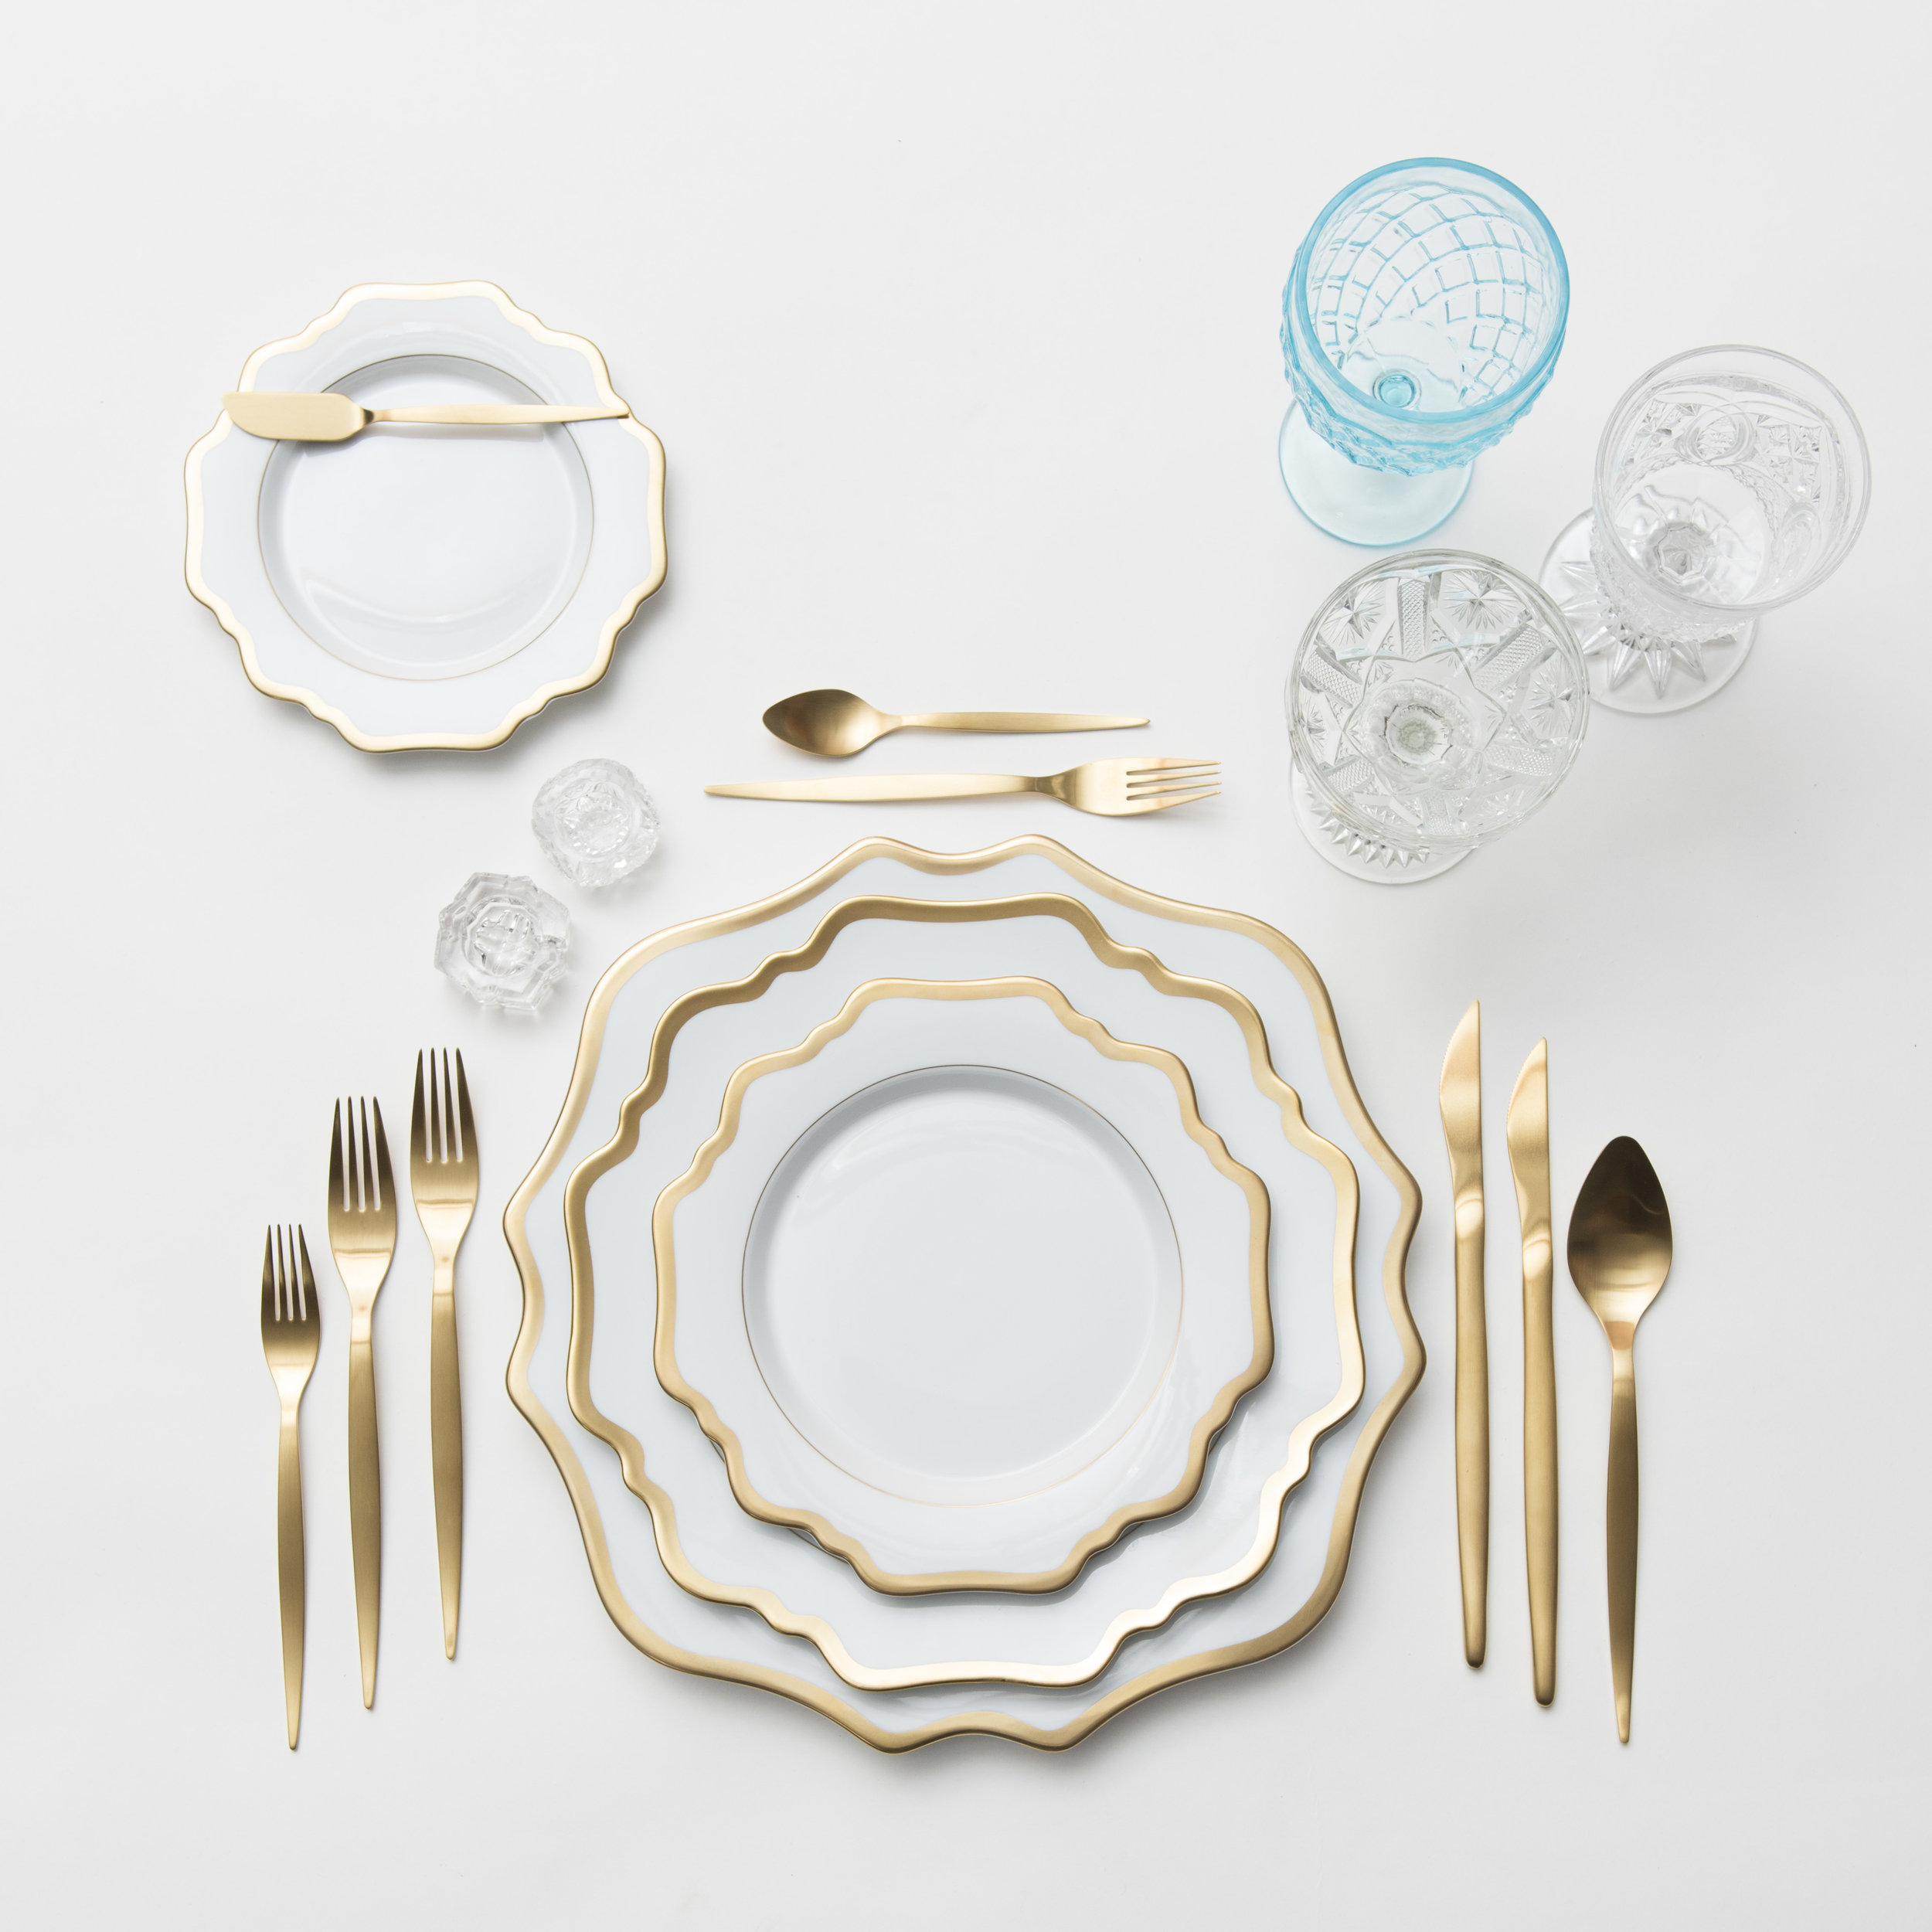 RENT: Anna Weatherley Chargers/Dinnerware in White/Gold + Celeste Flatware in Matte Gold + Aqua Vintage Goblets + Early American Pressed Glass Goblets + Vintage Champagne Coupes + Antique Crystal Salt Cellars  SHOP: Anna Weatherley Chargers/Dinnerware in White/Gold